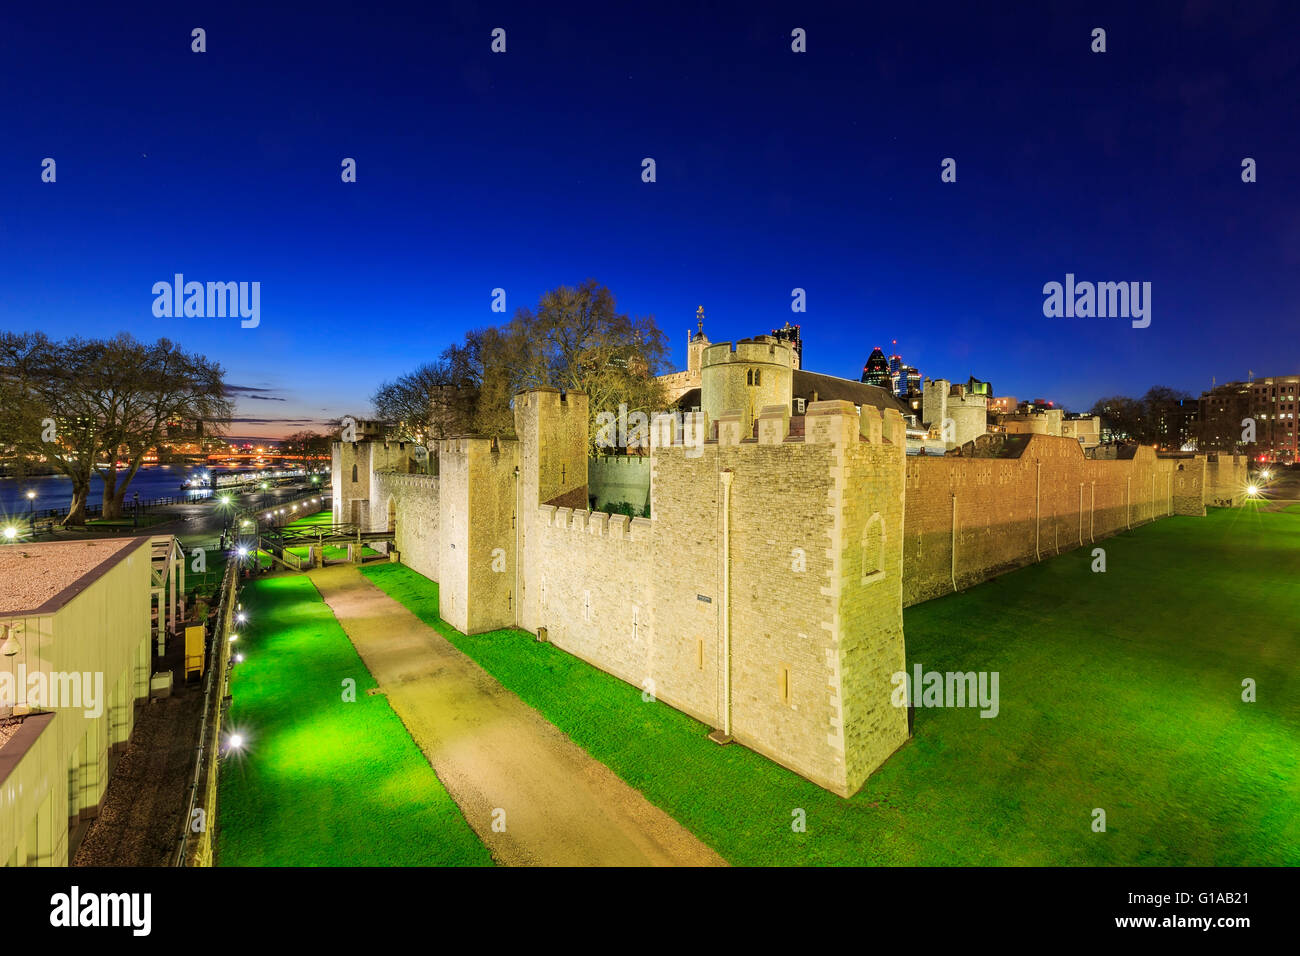 The famous Tower of London, United Kingdom - Stock Image